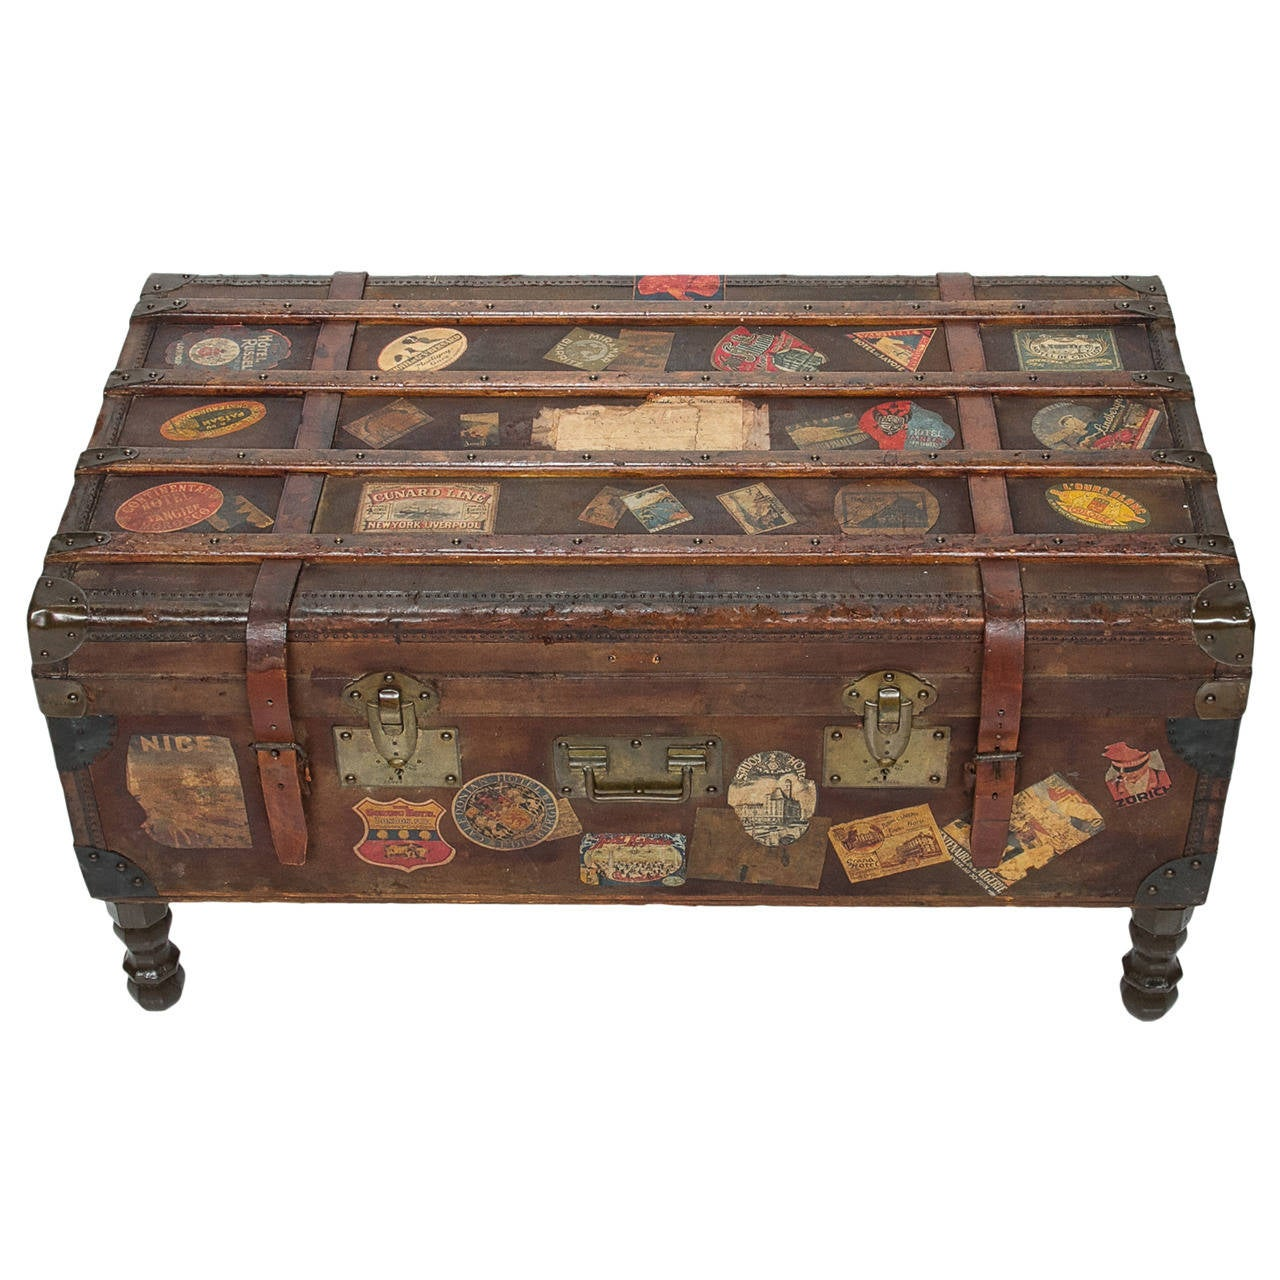 Vintage travel trunk coffee table by arthur eymann from marseille france at 1stdibs Old trunks as coffee tables